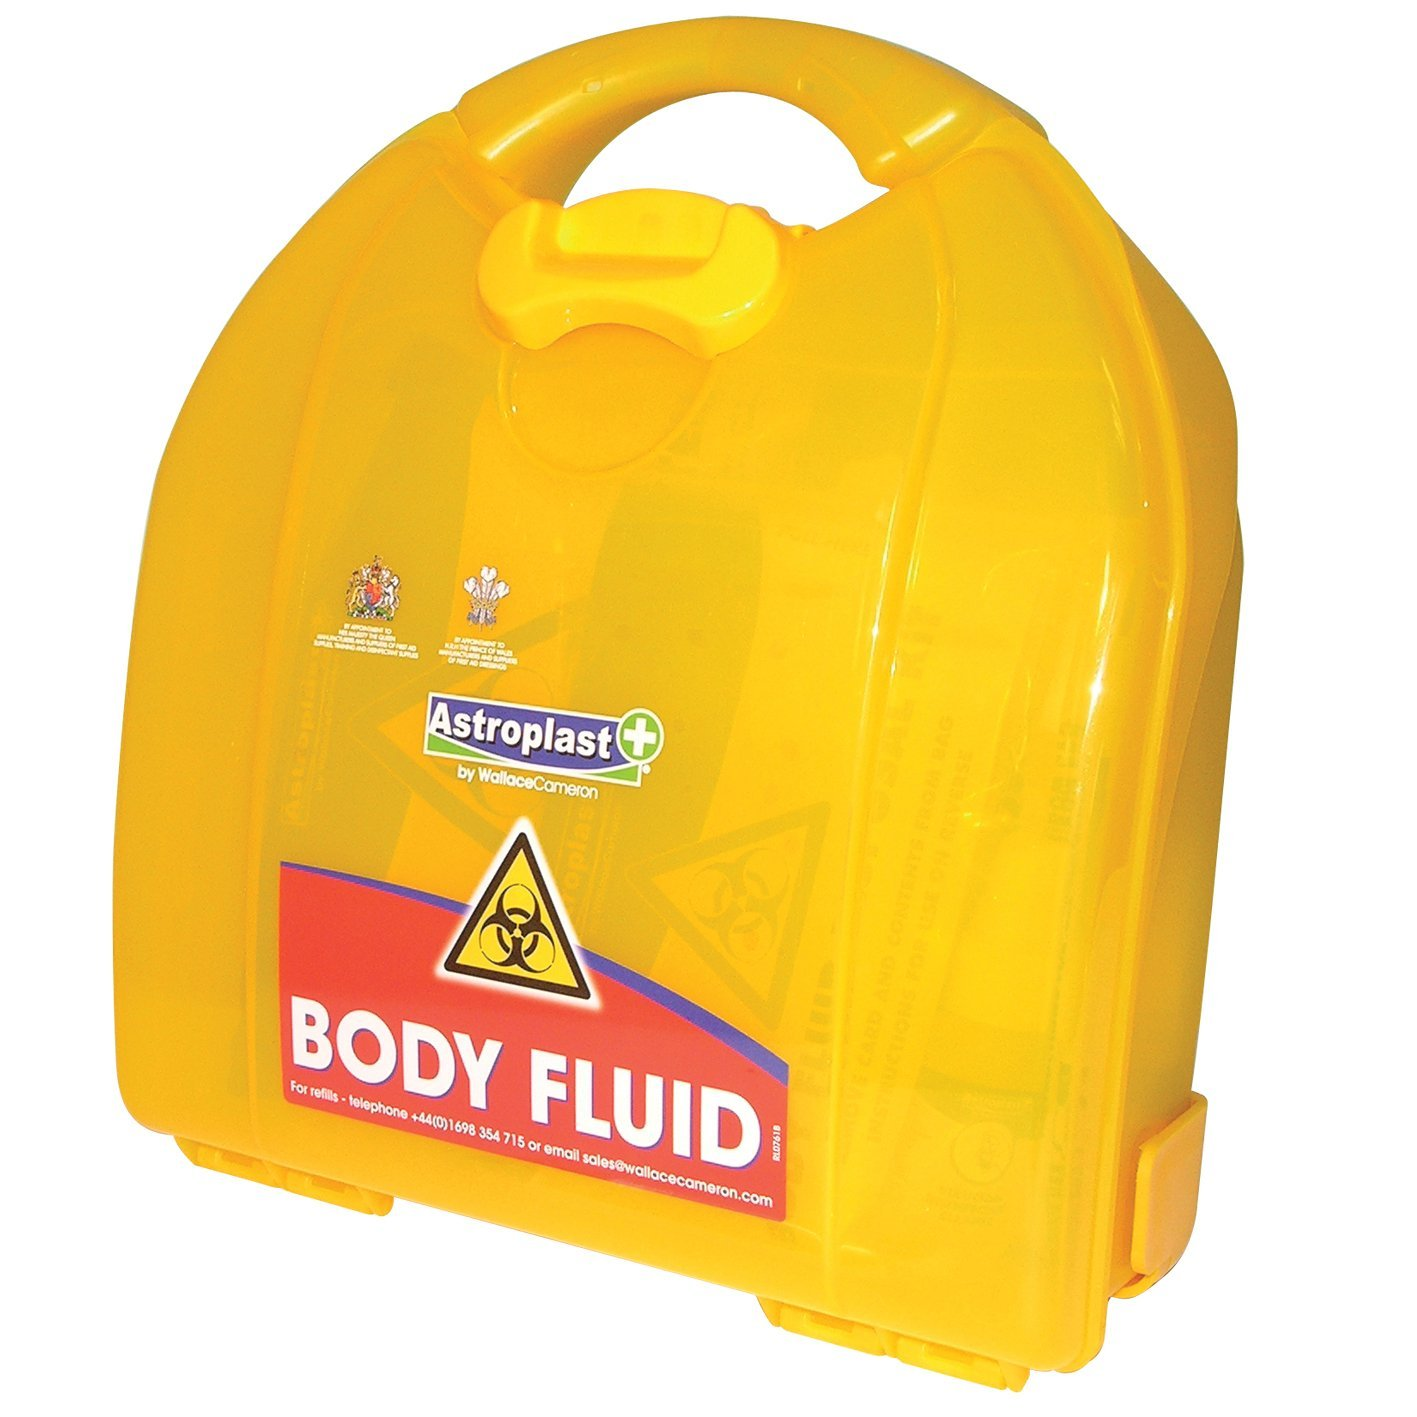 Astroplast Mezzo Body Fluid & Sharps 3 Applications Yellow